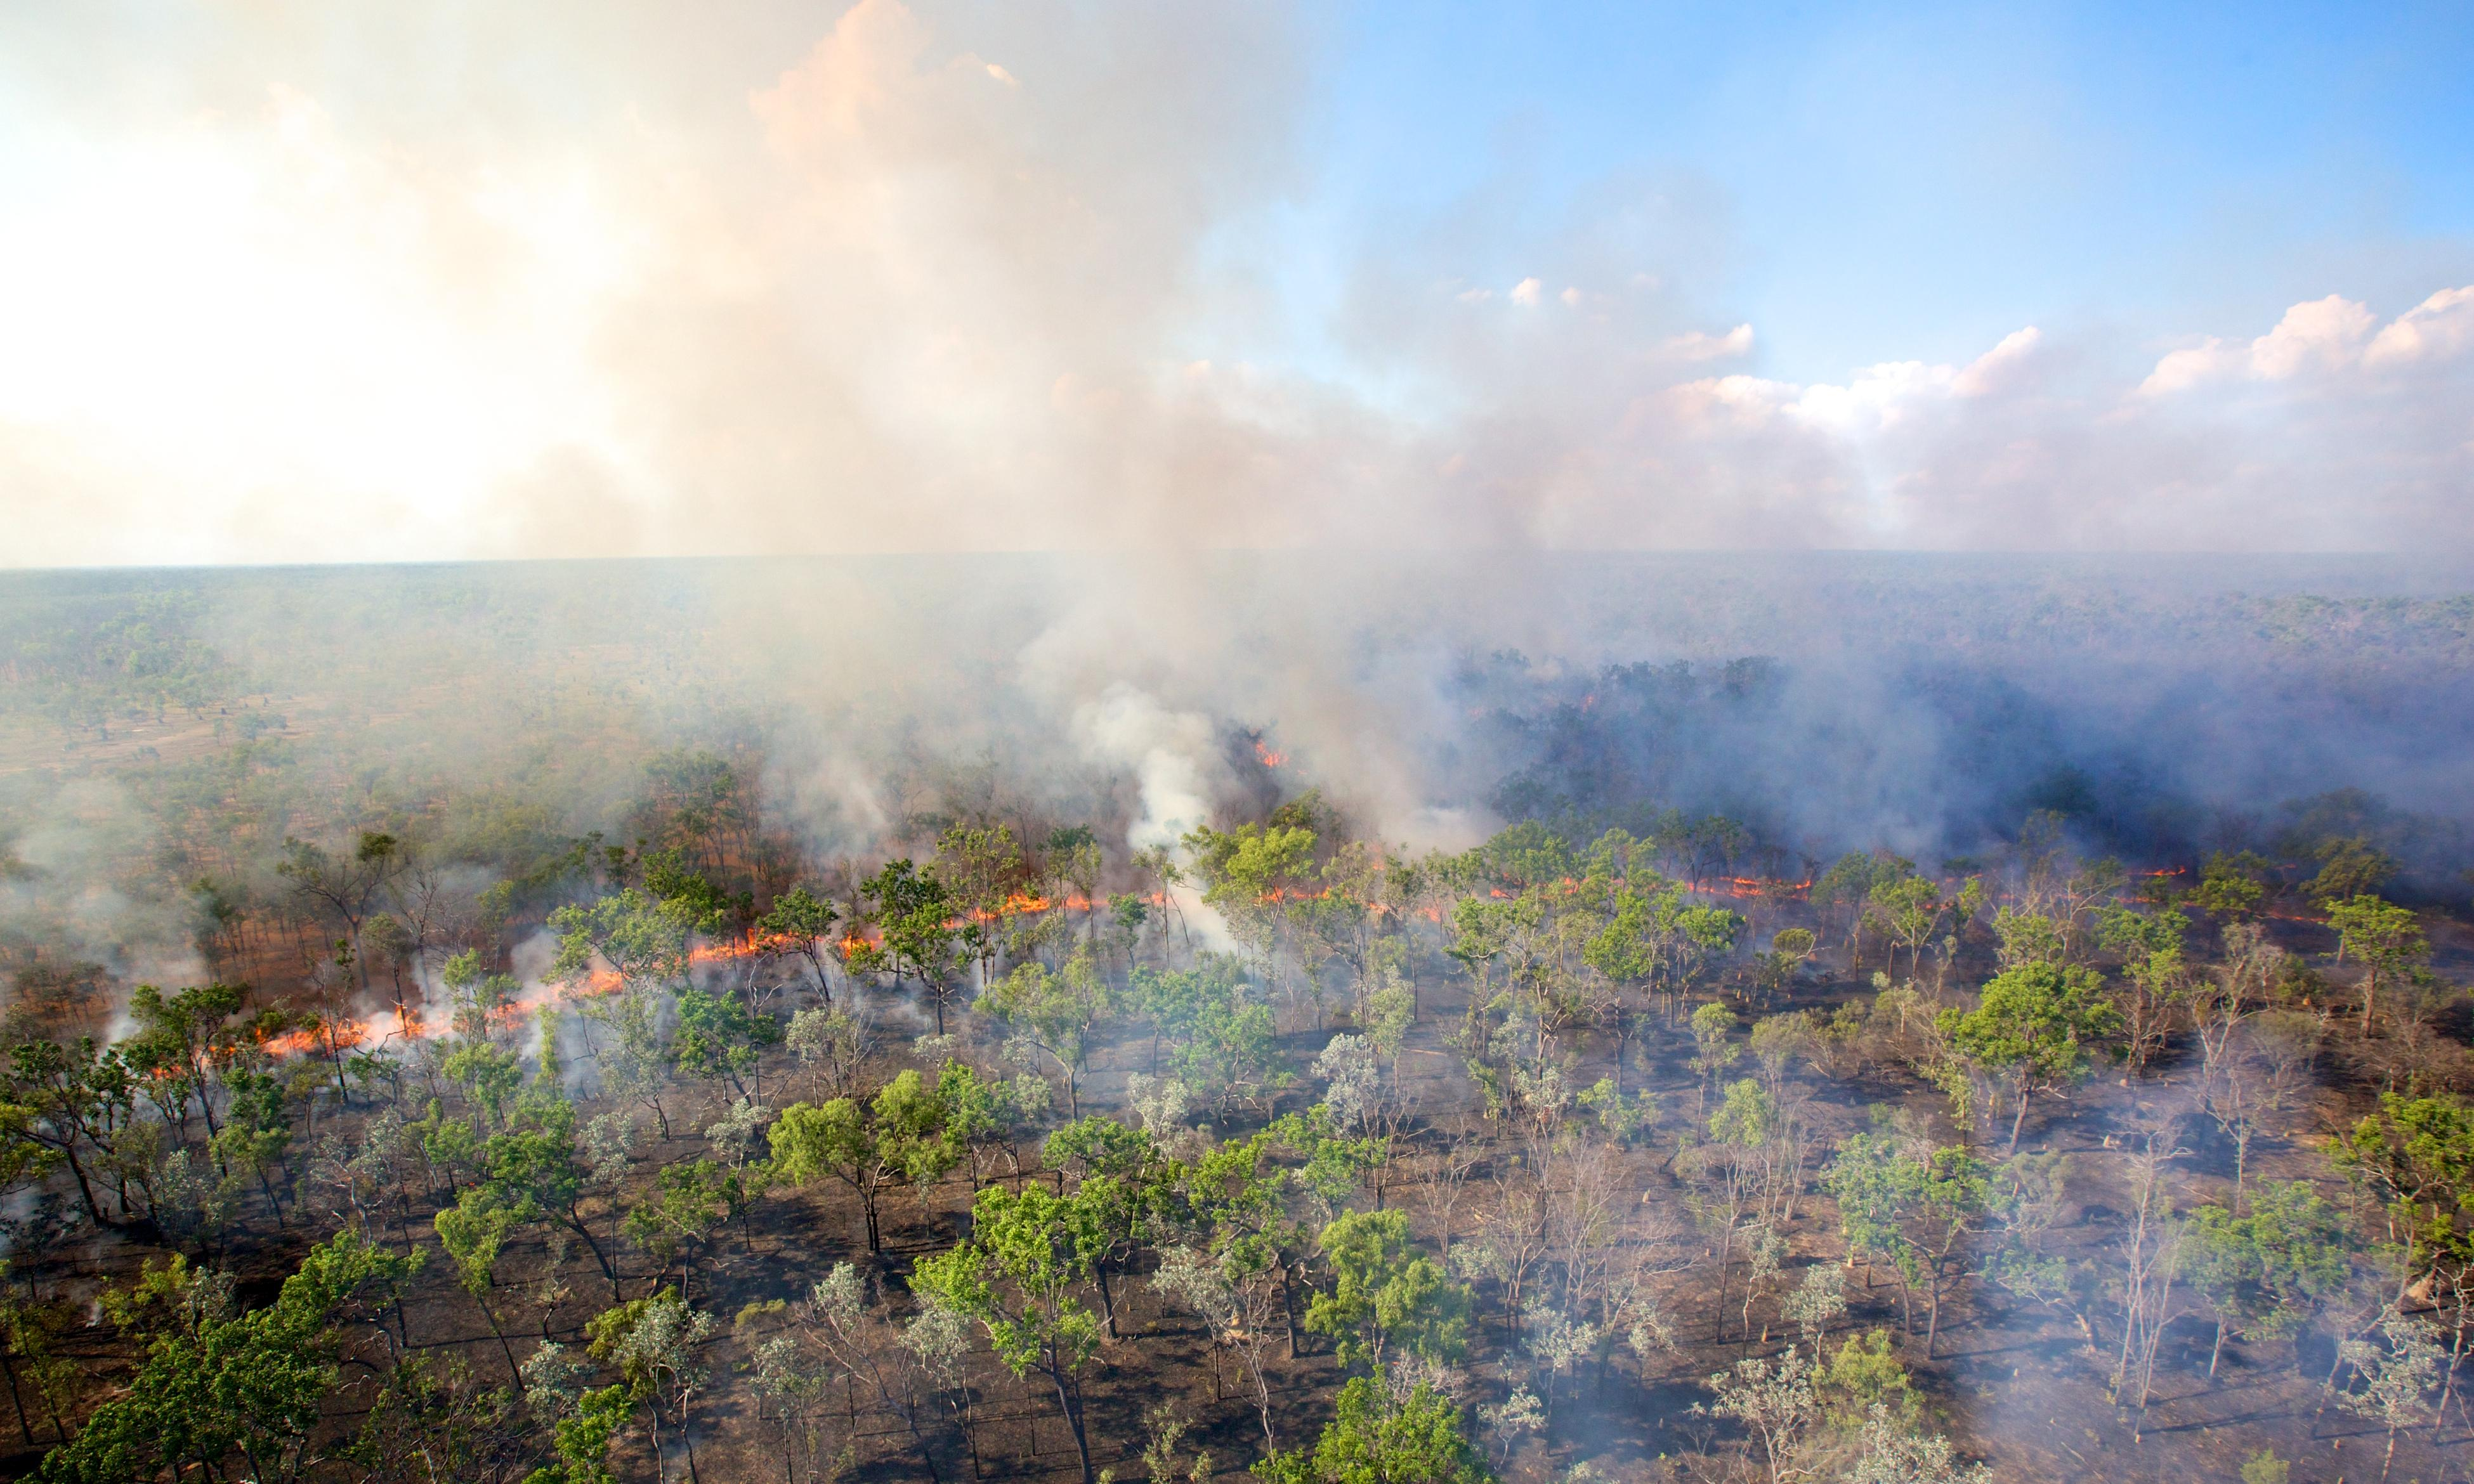 Australia is despairing this Invasion Day – fire and carbon are what we should be reflecting on